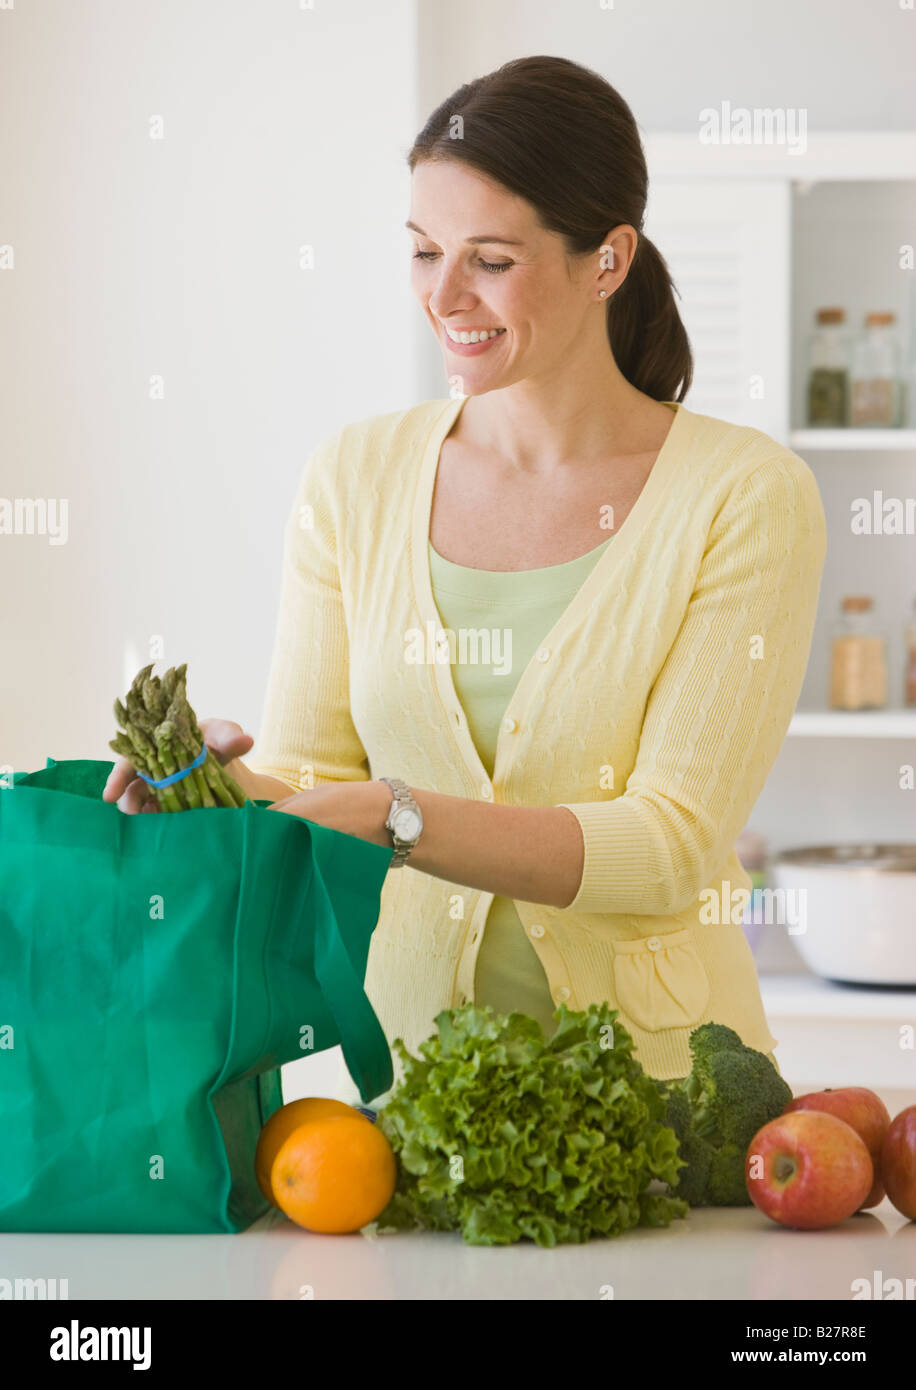 Woman unpacking groceries - Stock Image